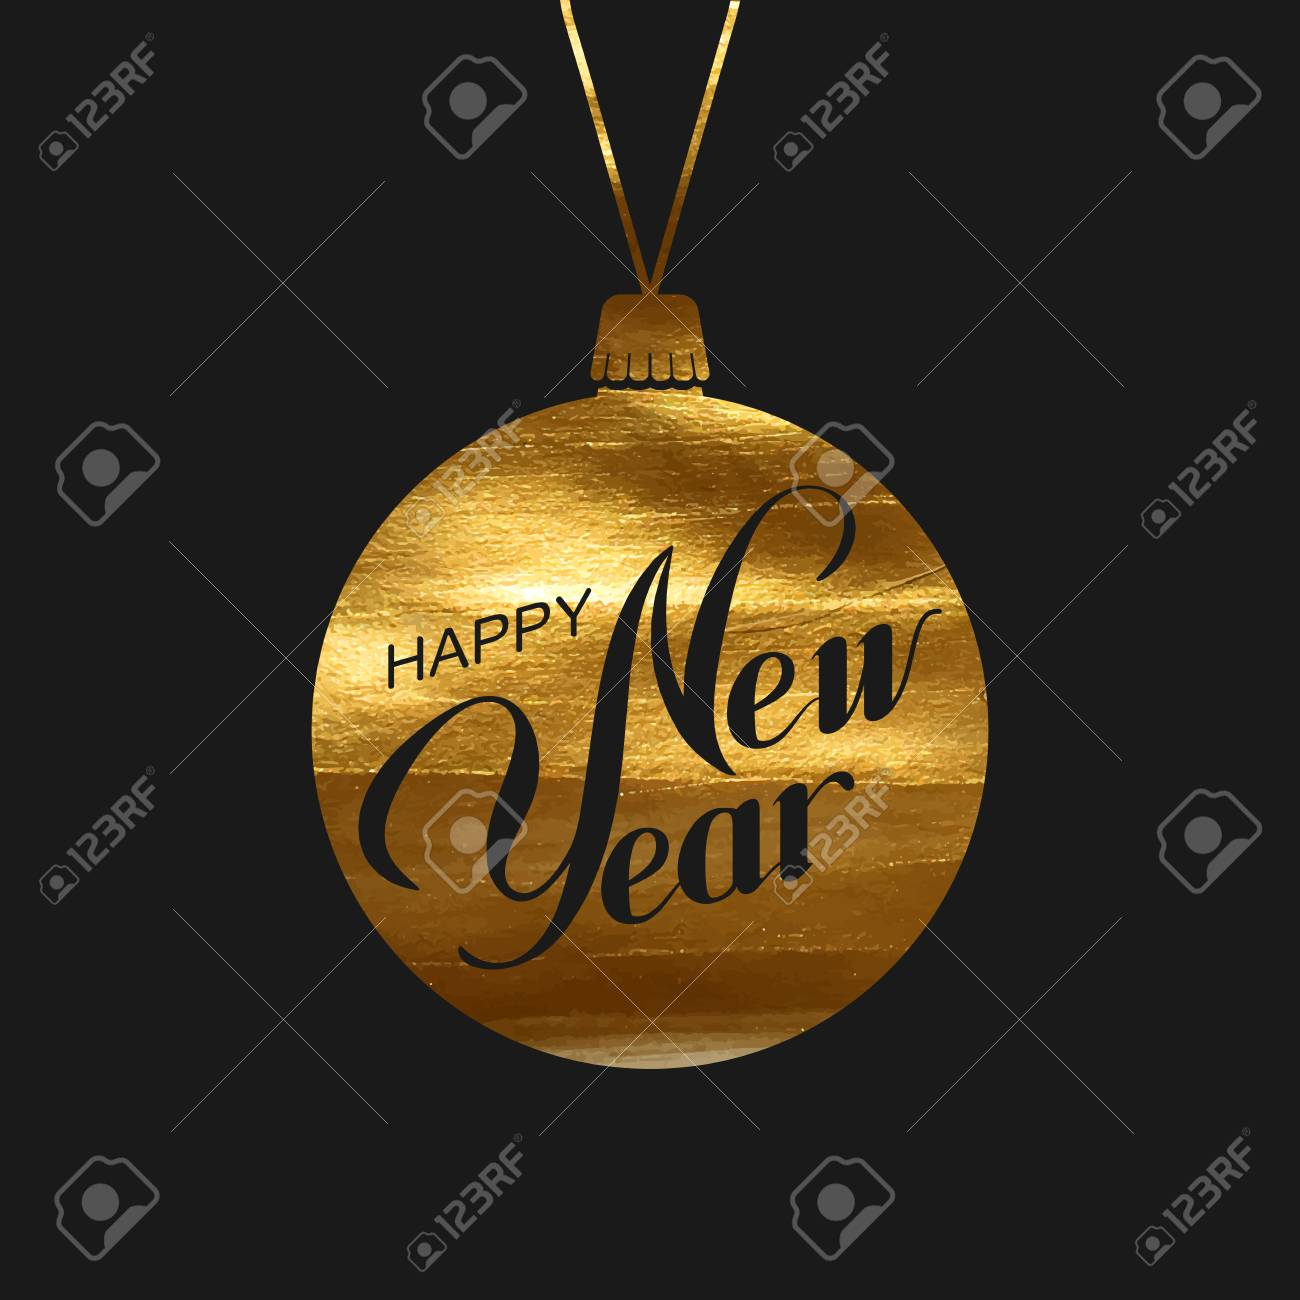 golden christmas ball with happy new year label holiday illustration of new year holiday bauble